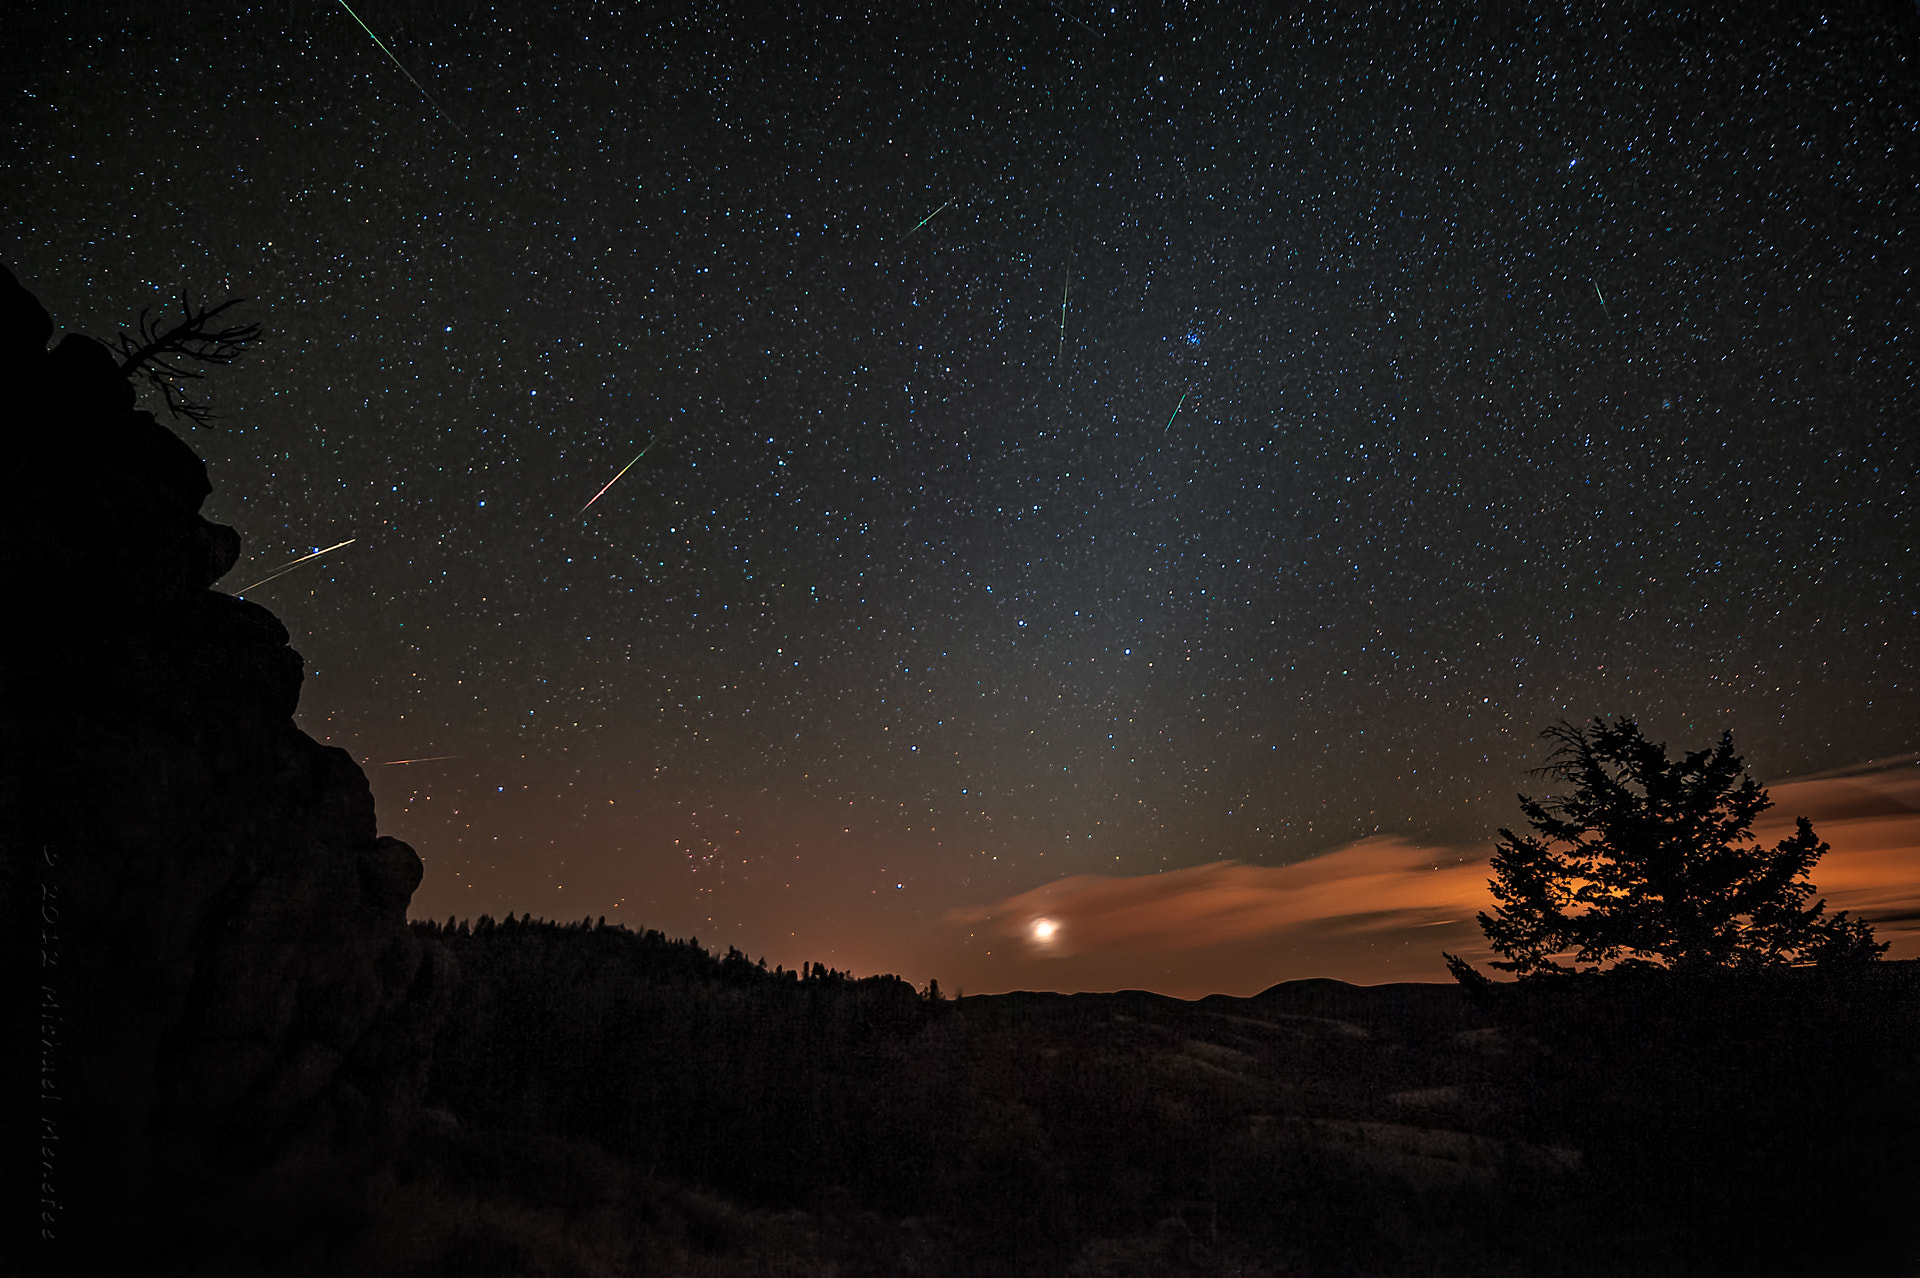 Photograph 2012's Orionid Meteor Shower Meets Zodiacal Light by Michael Menefee on 500px